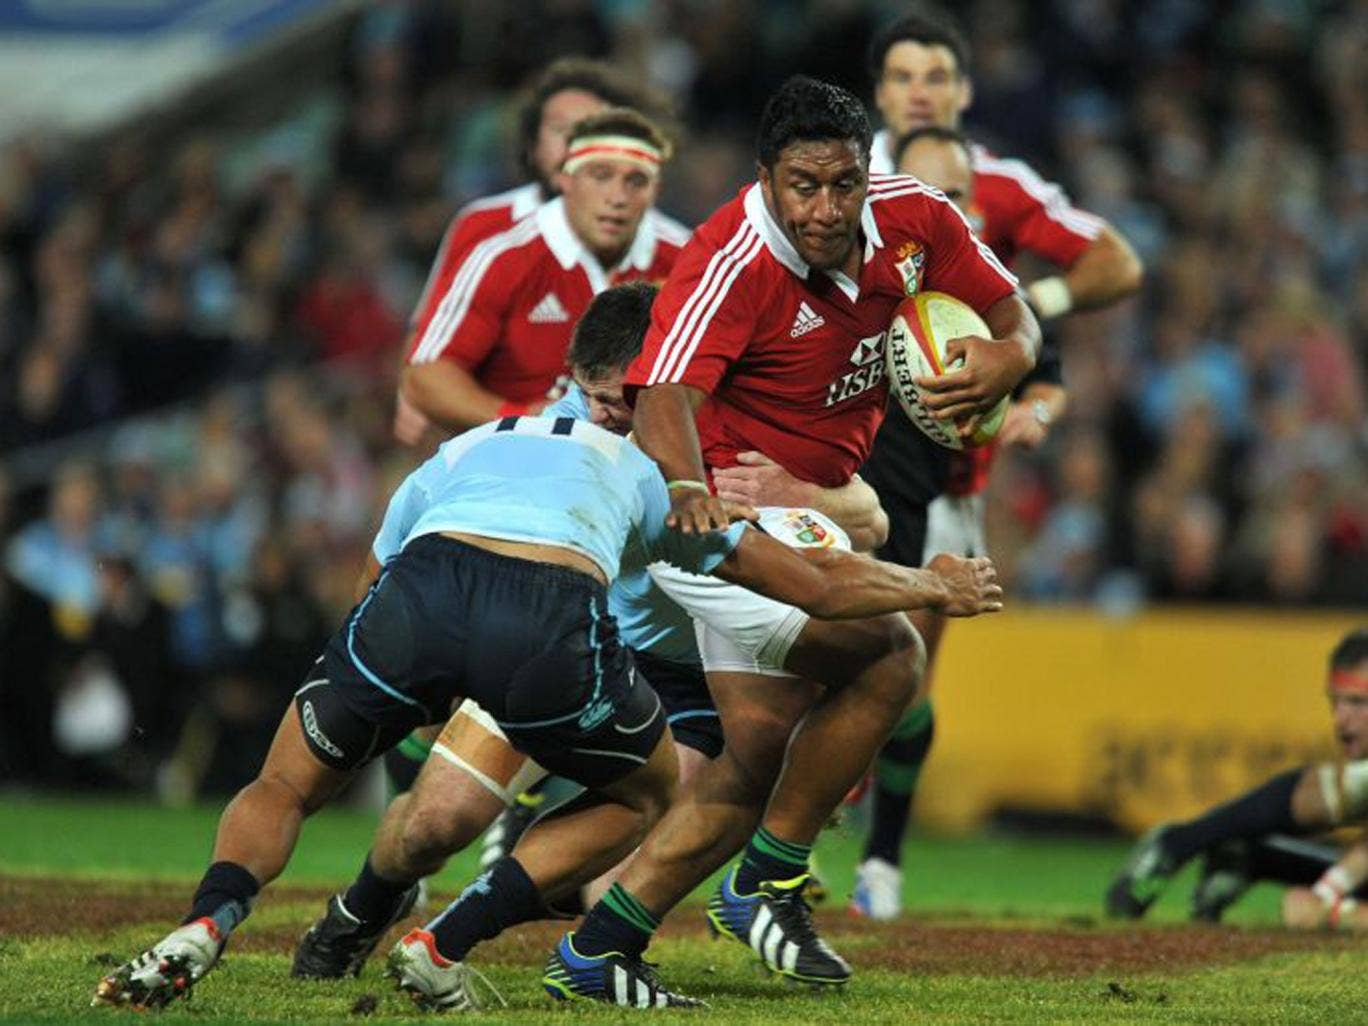 `Mako Vunipola has been a revelation throughout  his first season in international rugby